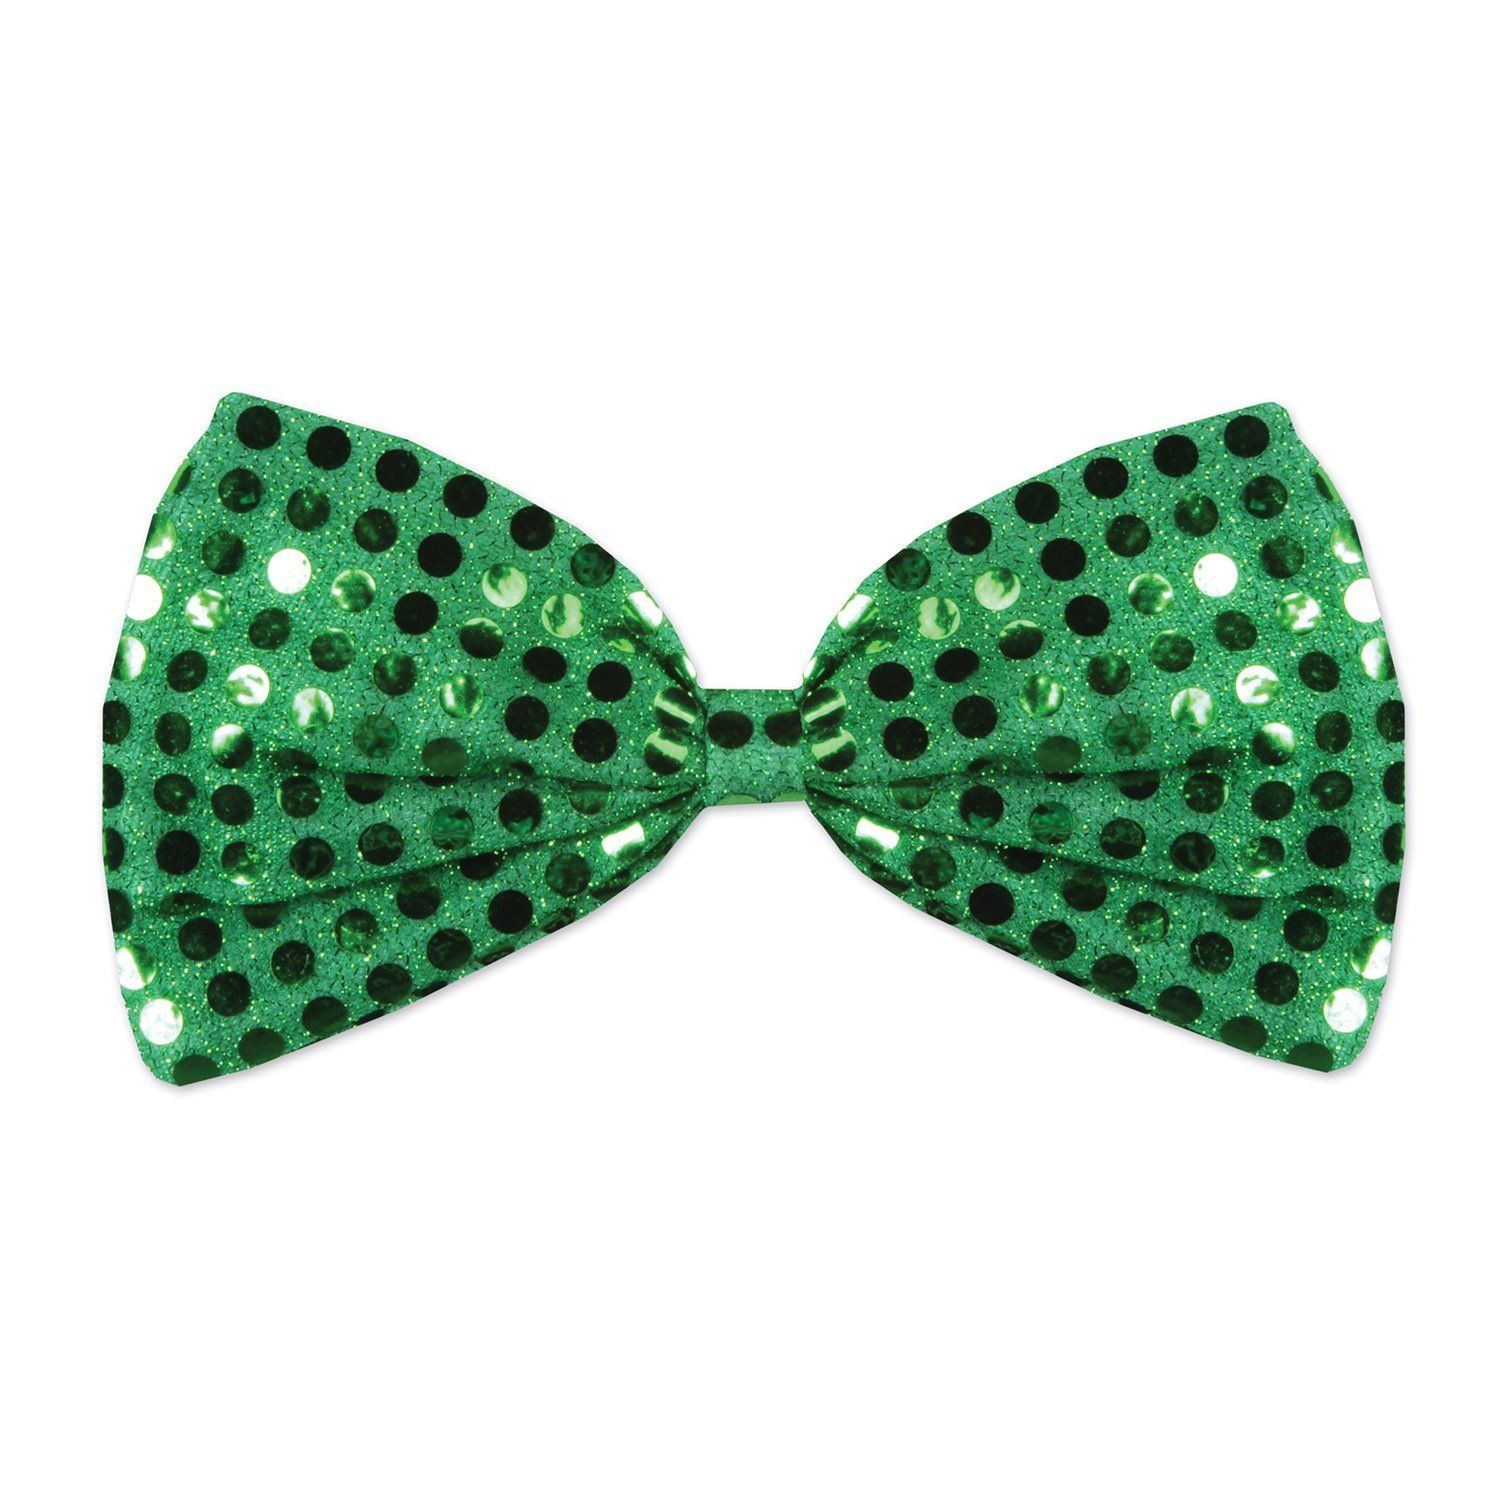 Green Glitz N Gleam Bow Tie